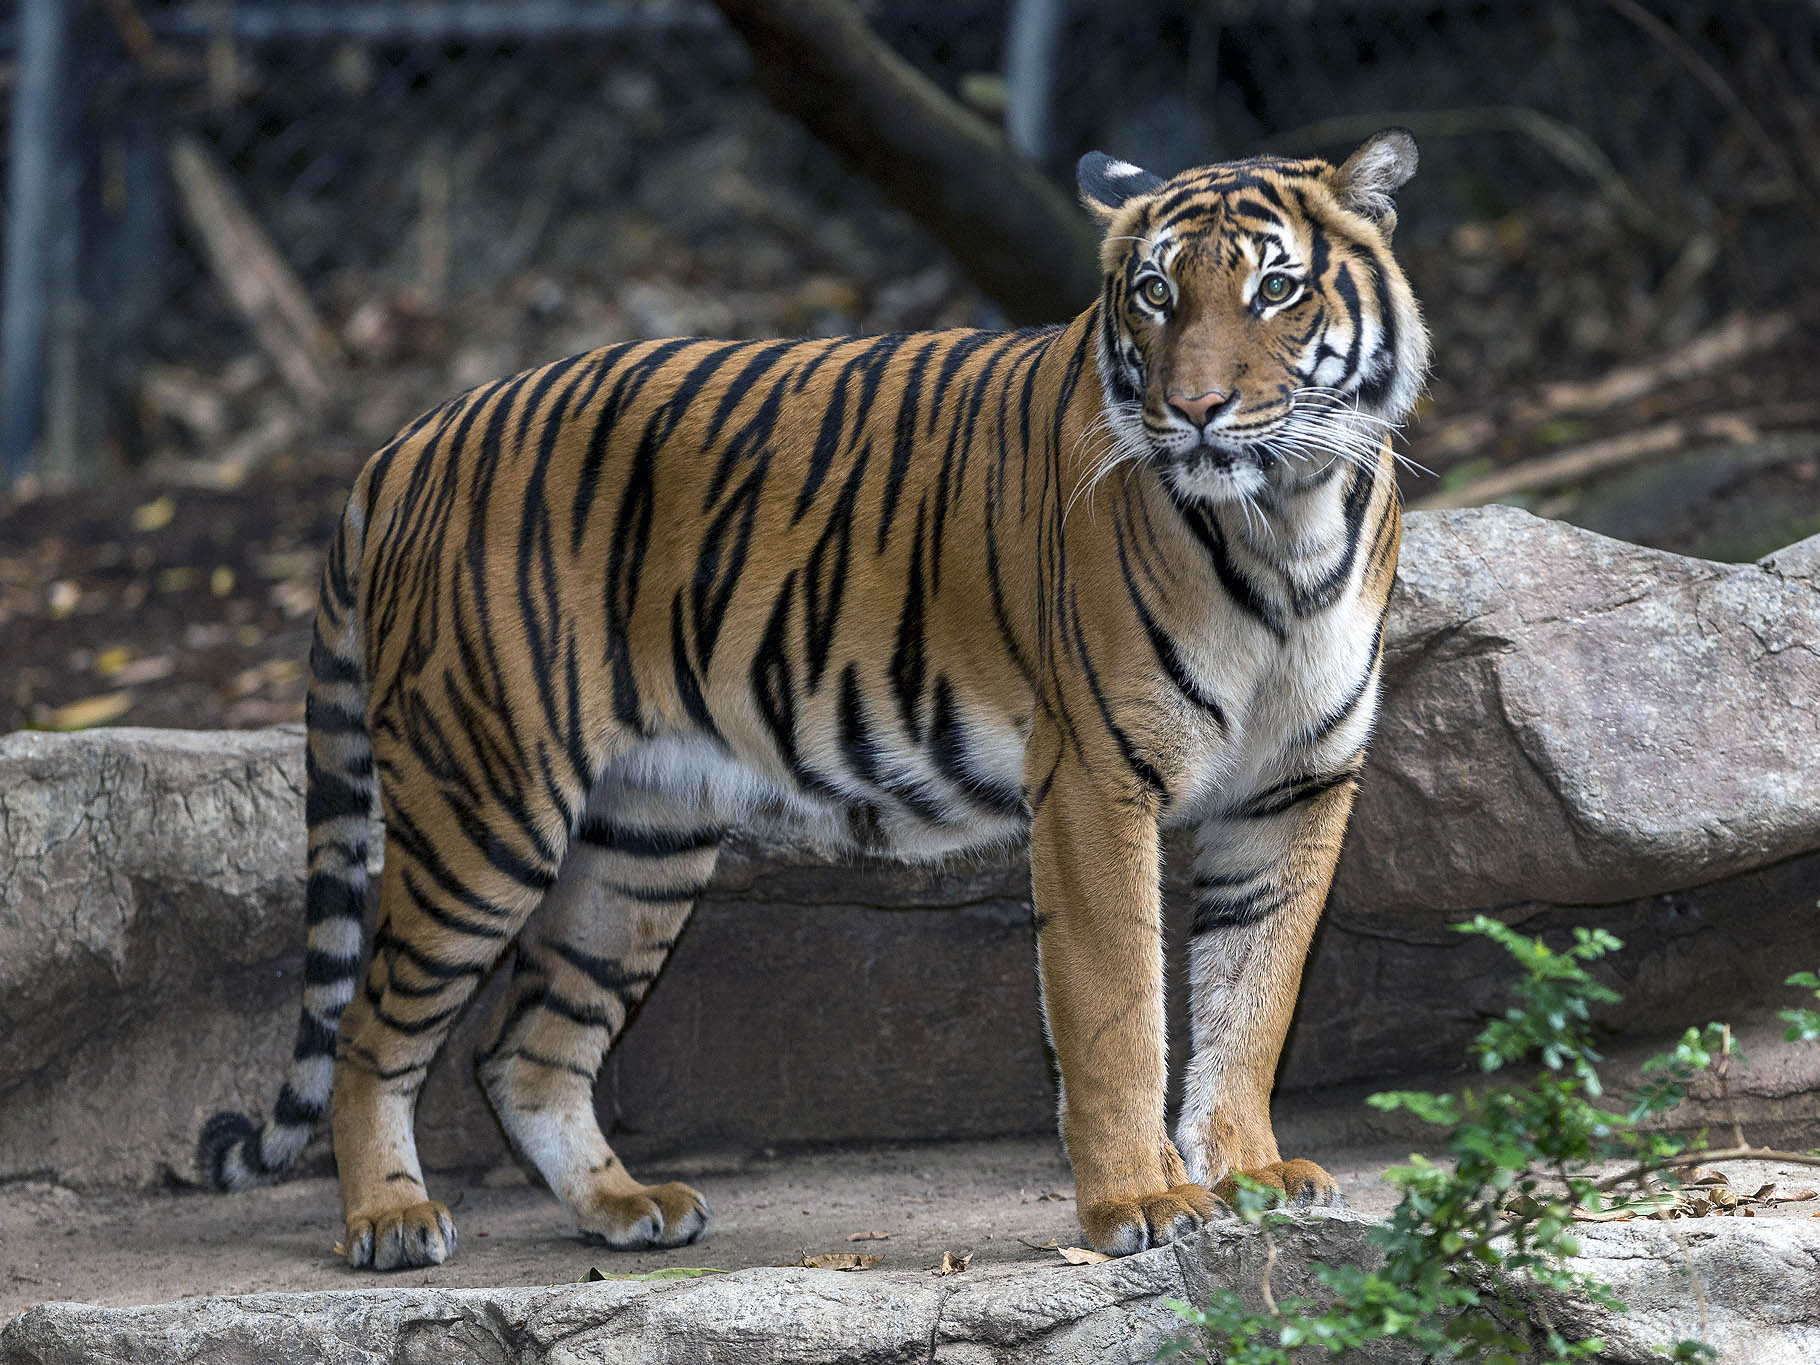 Tiger fatally mauls intended mate at San Diego Zoo - CBS News